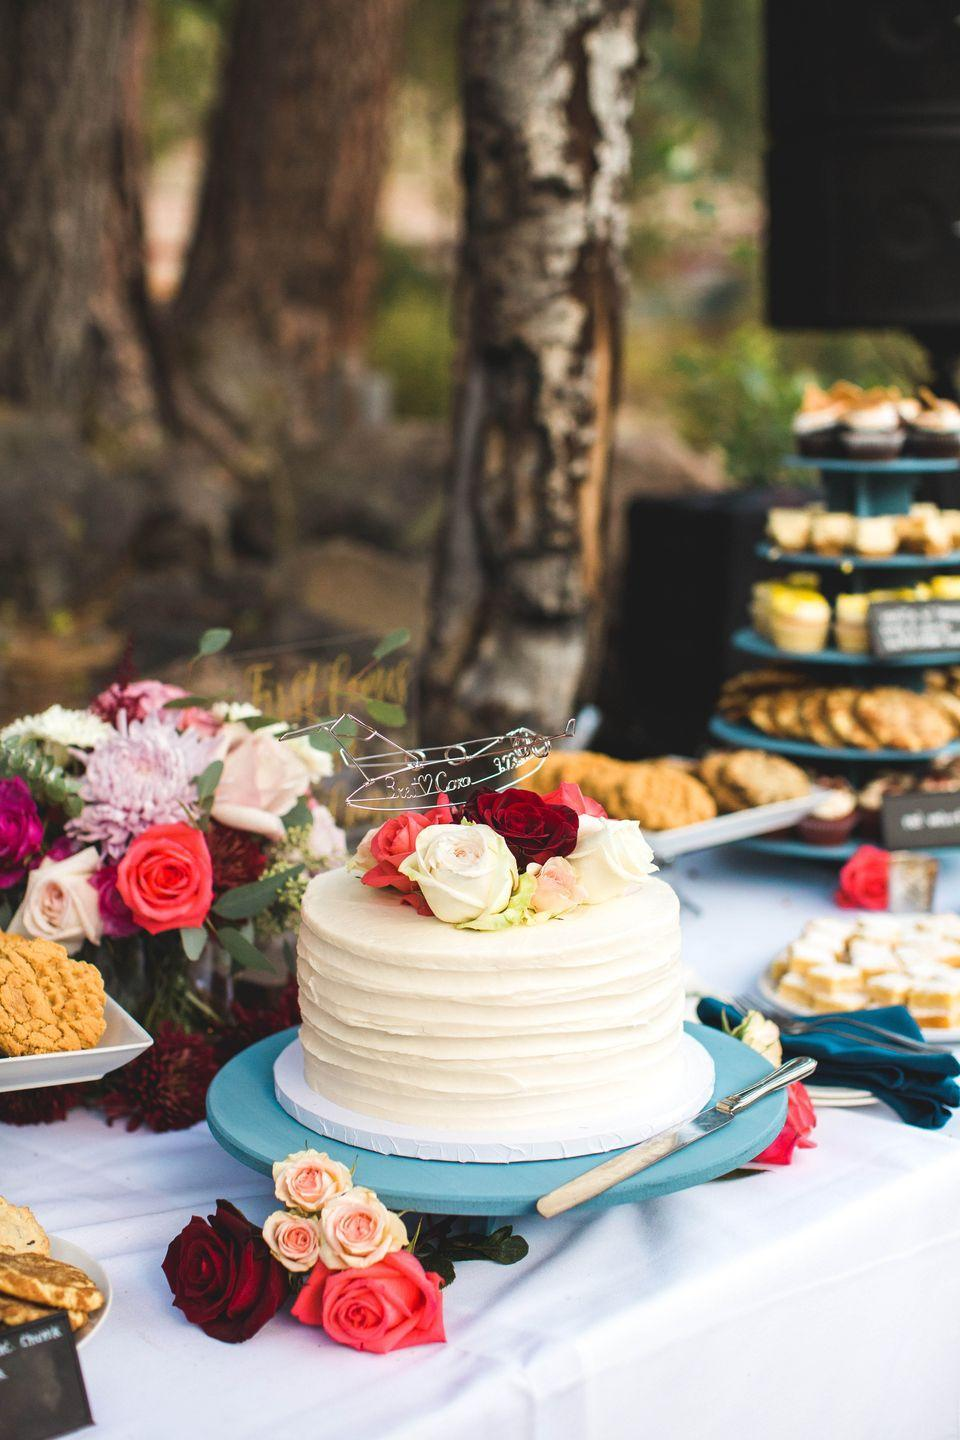 """<p>Adorn the dessert table with in-season flowers (like these from <a href=""""https://www.fiftyflowers.com/"""" rel=""""nofollow noopener"""" target=""""_blank"""" data-ylk=""""slk:Fifty Flowers"""" class=""""link rapid-noclick-resp"""">Fifty Flowers</a>) for a fresh way to display your wedding cake.</p>"""